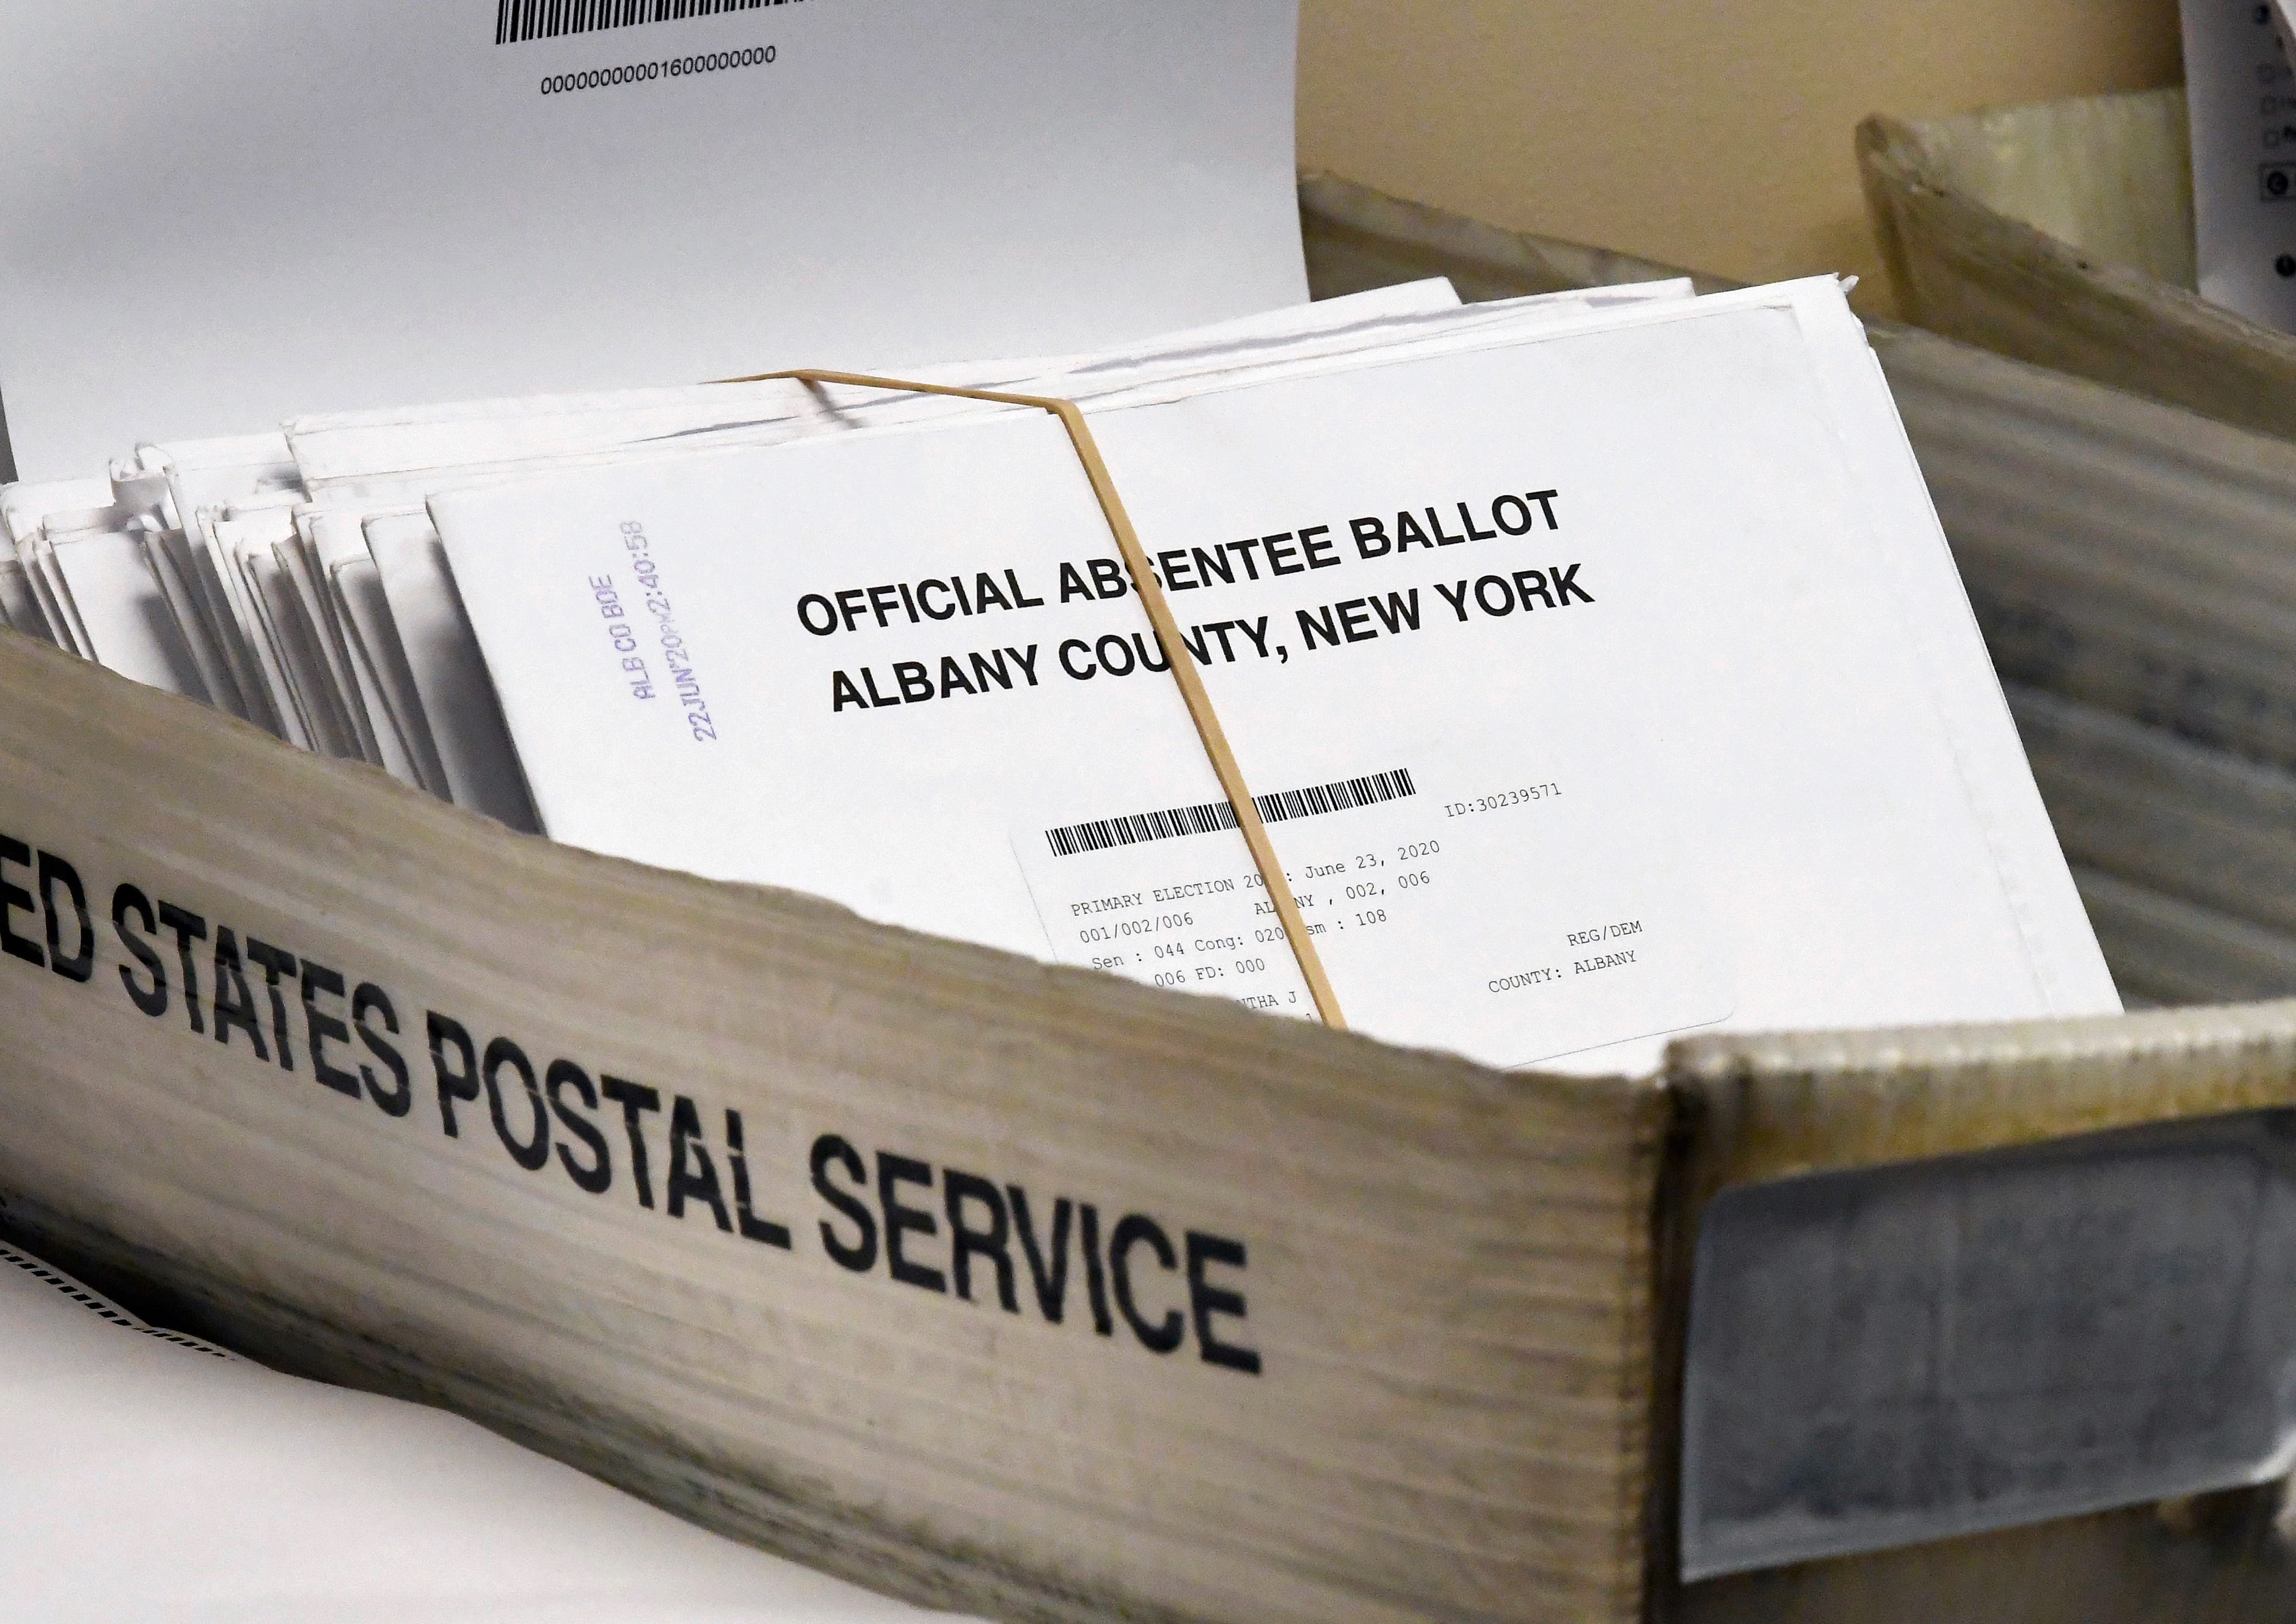 Absentee ballots wait to be counted at the Albany County Board of Elections in Albany, N.Y., on June 30, 2020.